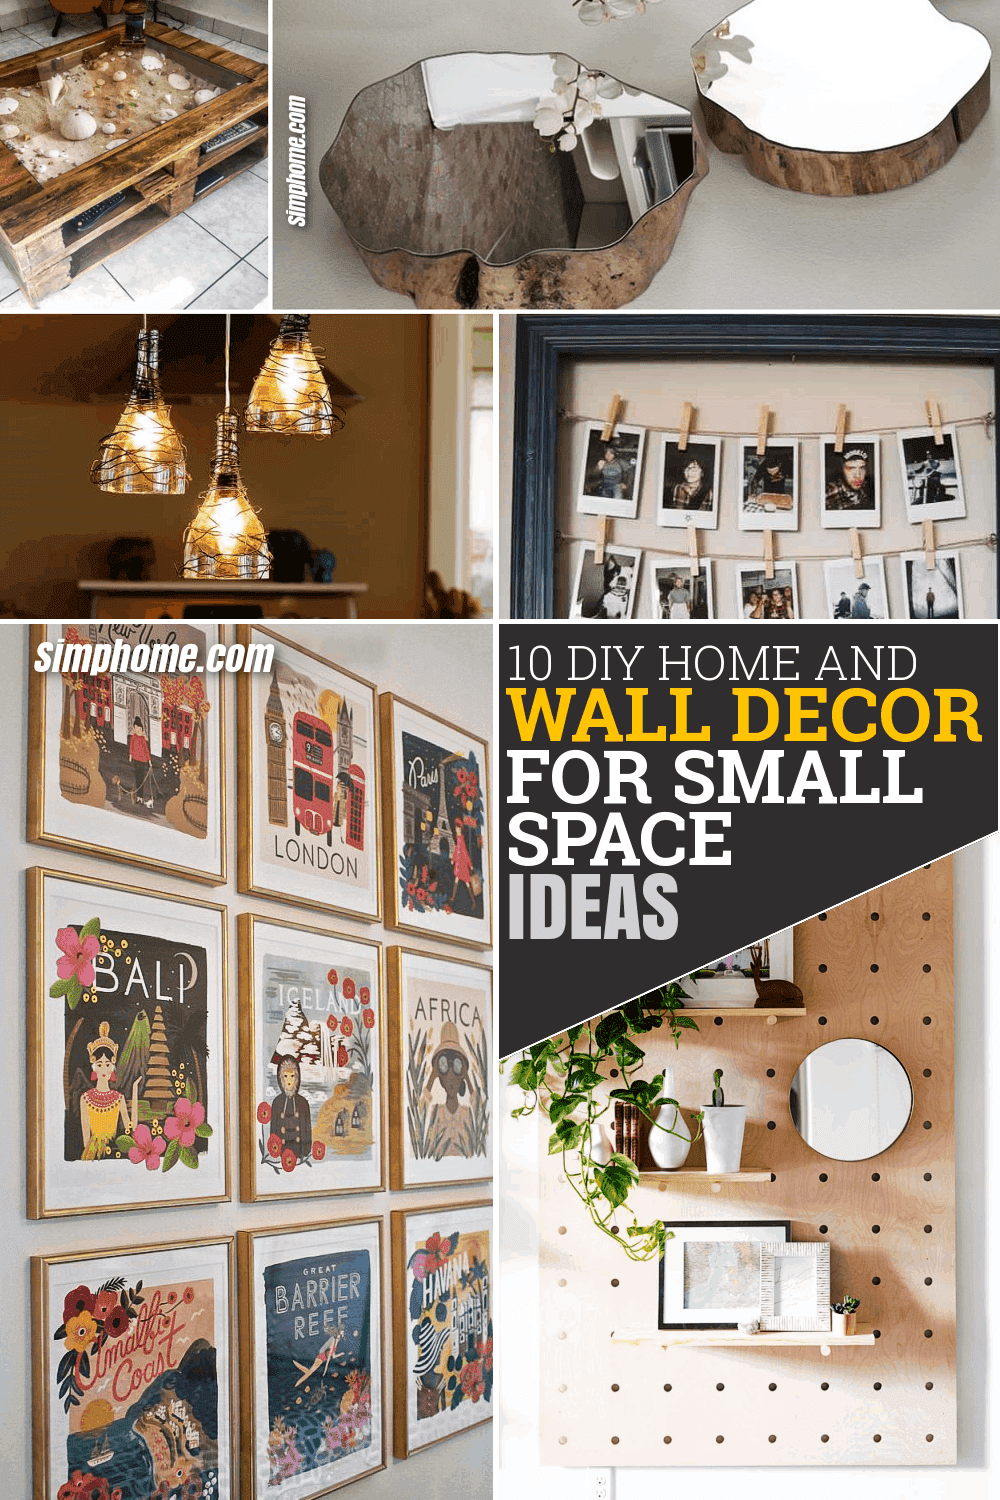 10 Diy Home And Wall Decor Small Space Ideas Simphome